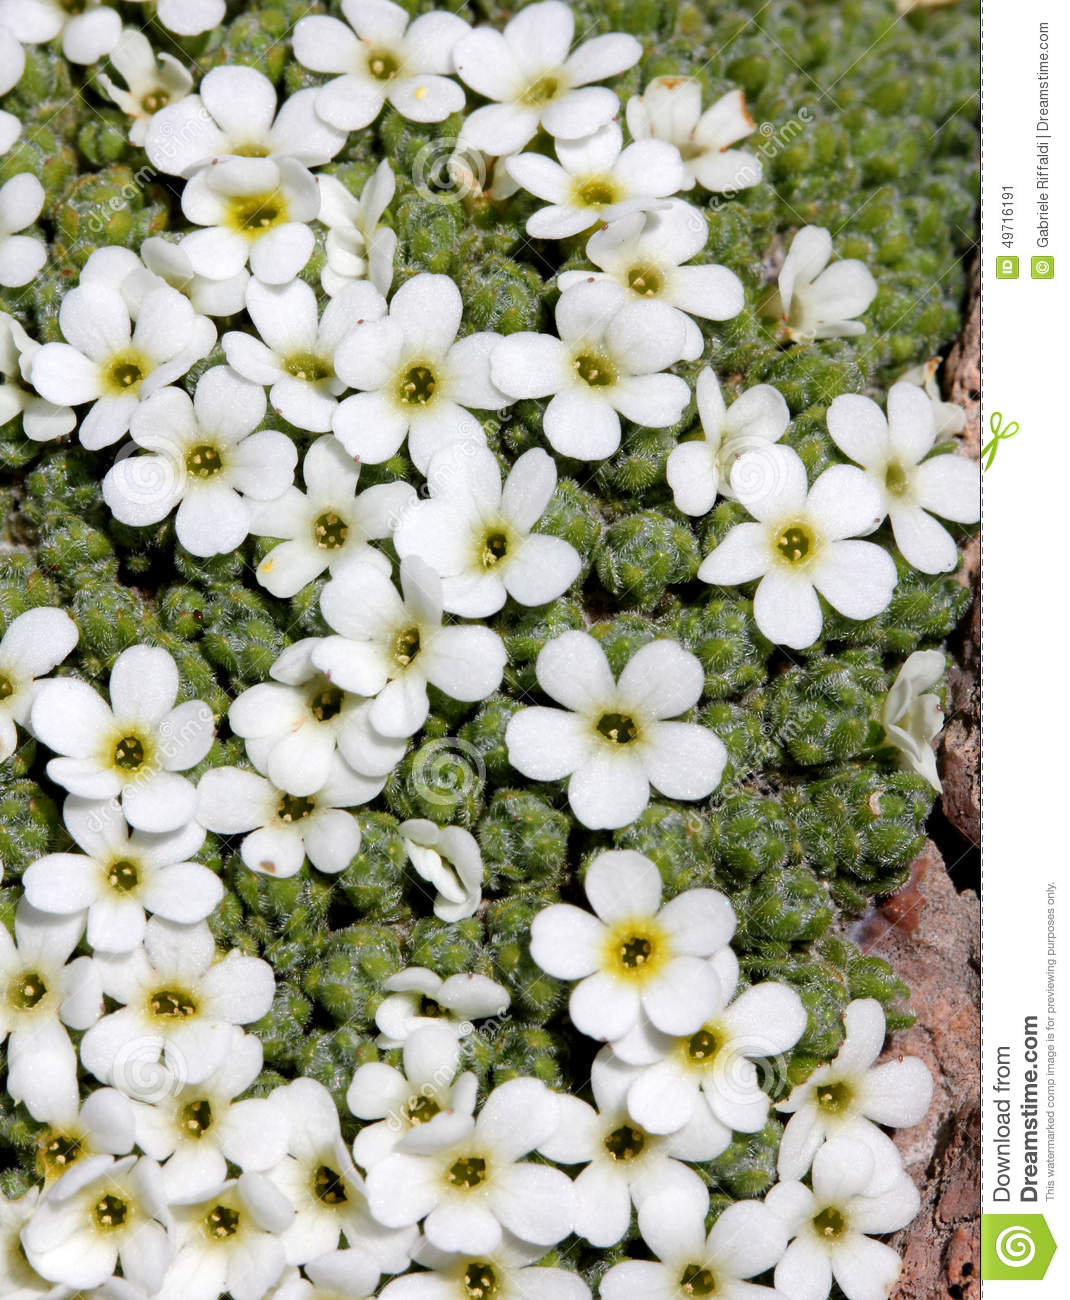 Tiny white flowers gallery fresh lotus flowers little white flowers androsace helvetica stock image image of mightylinksfo